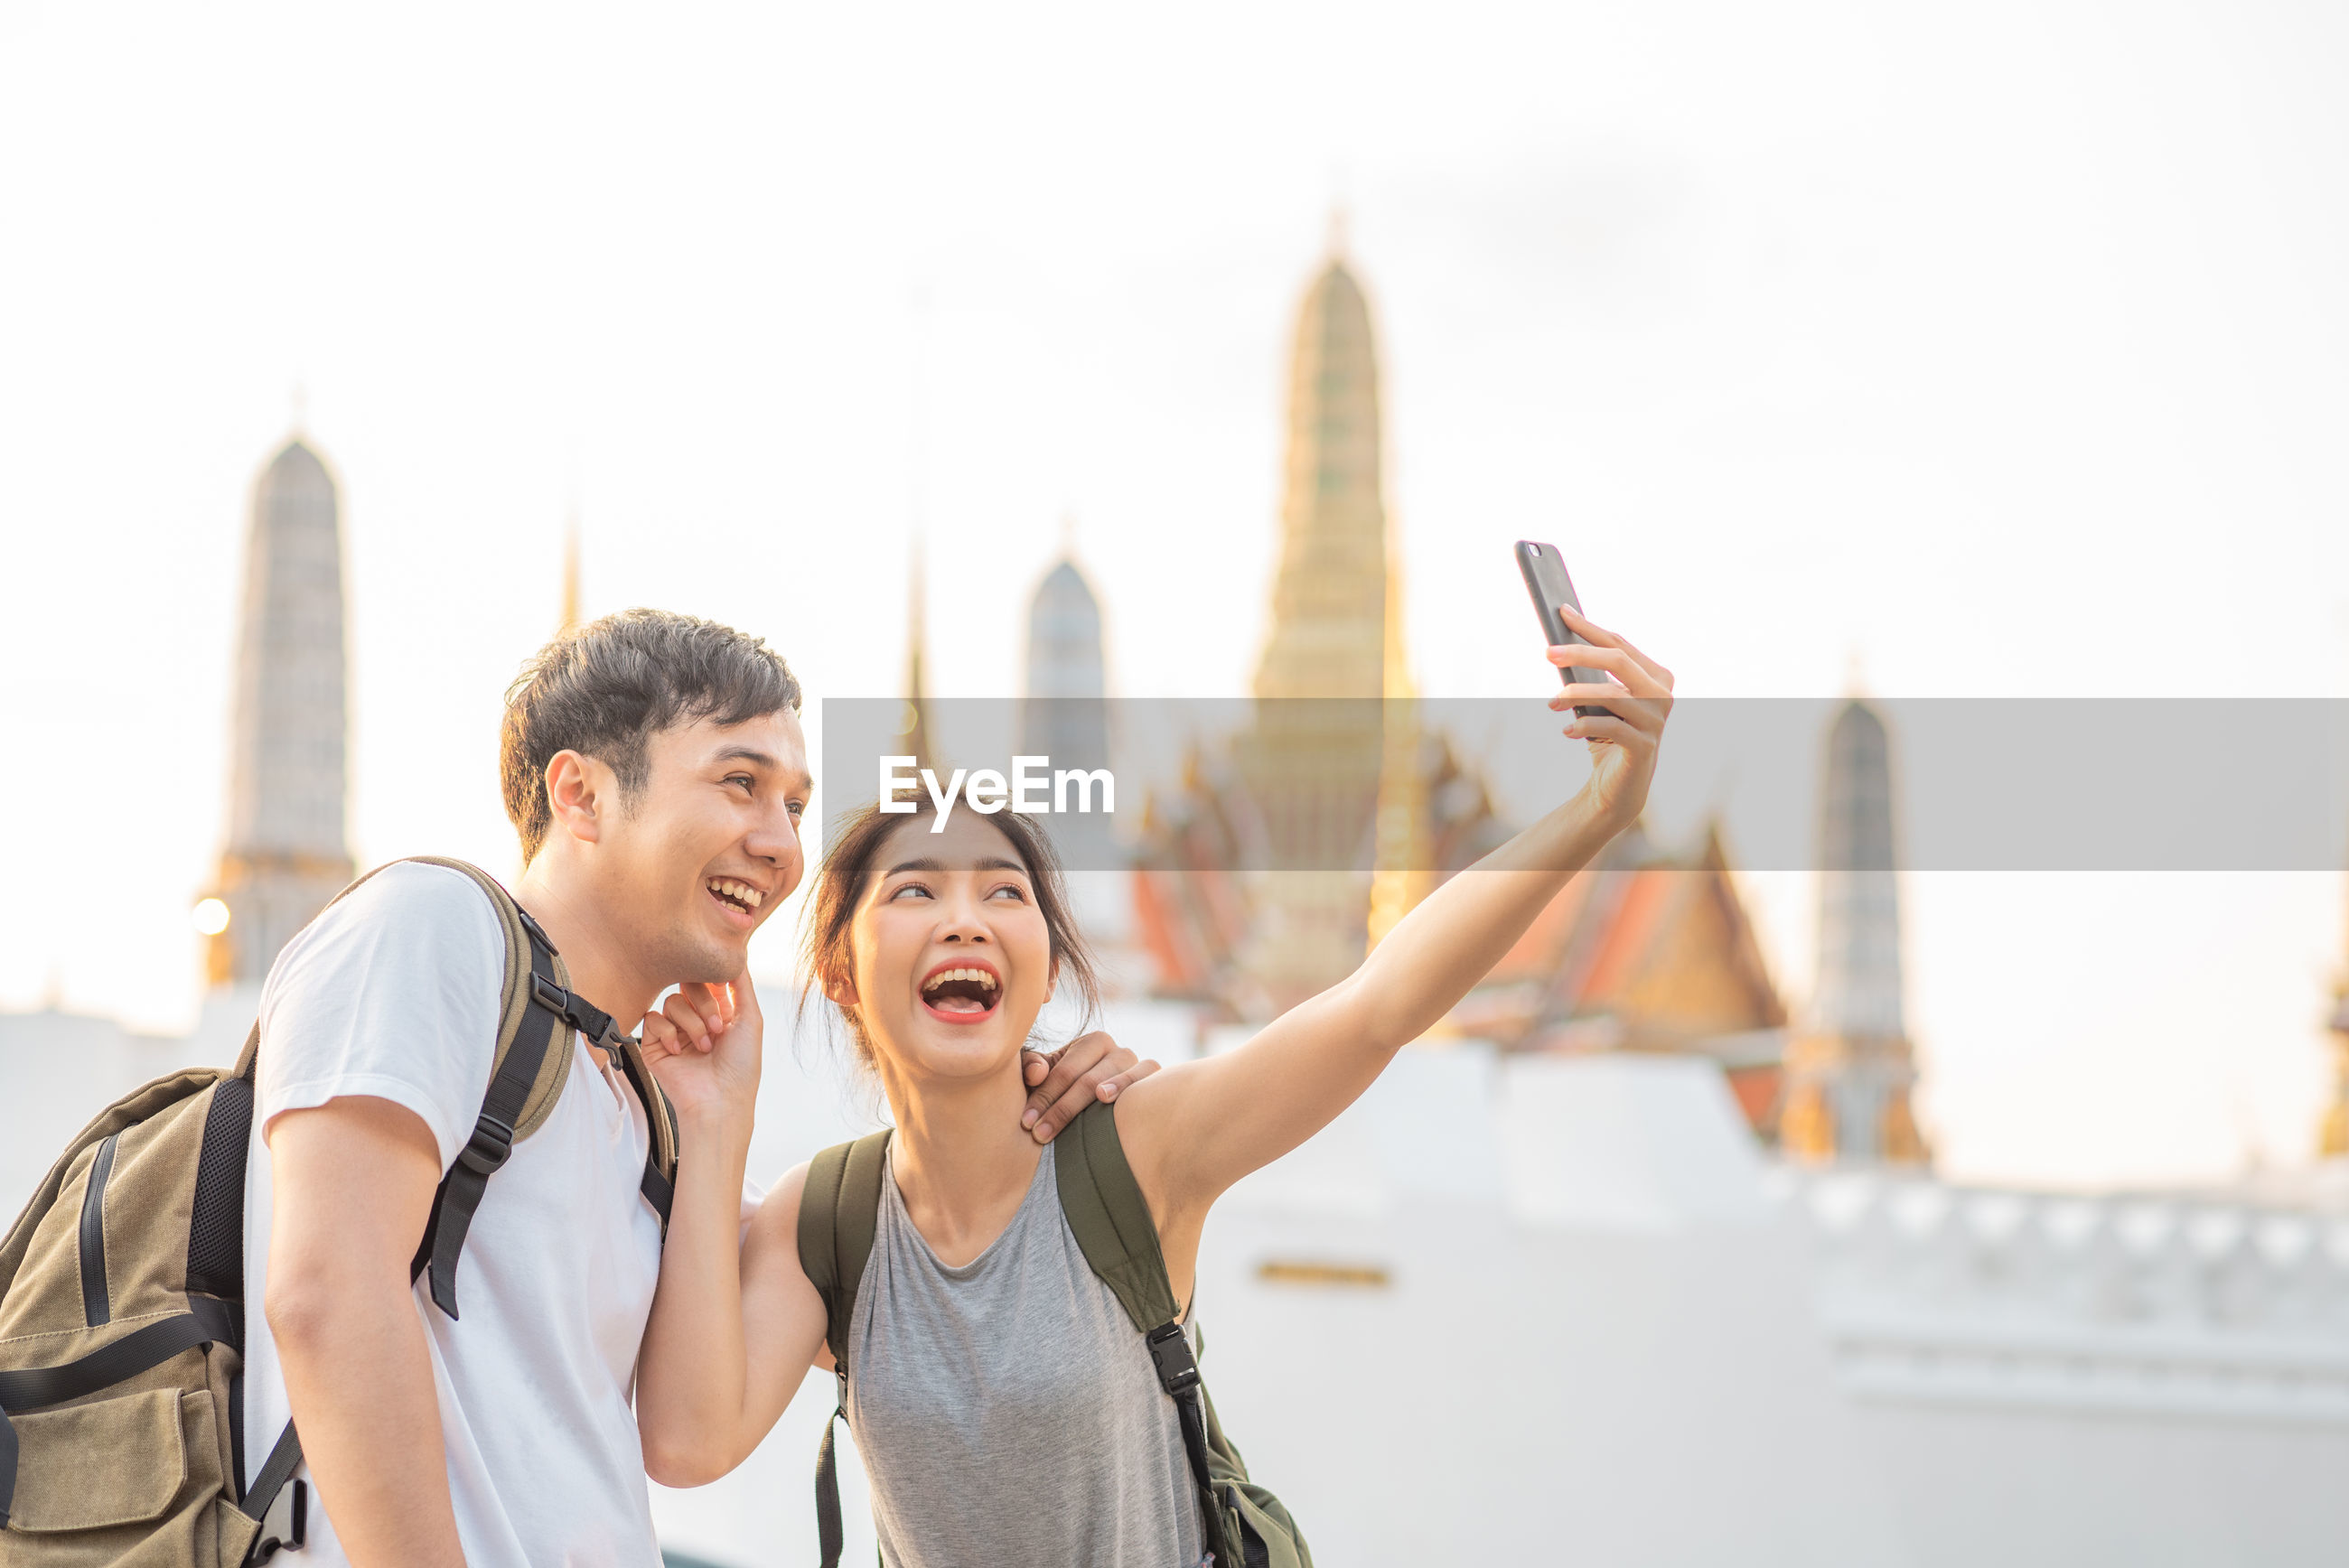 Smiling young couple taking selfie while standing in city